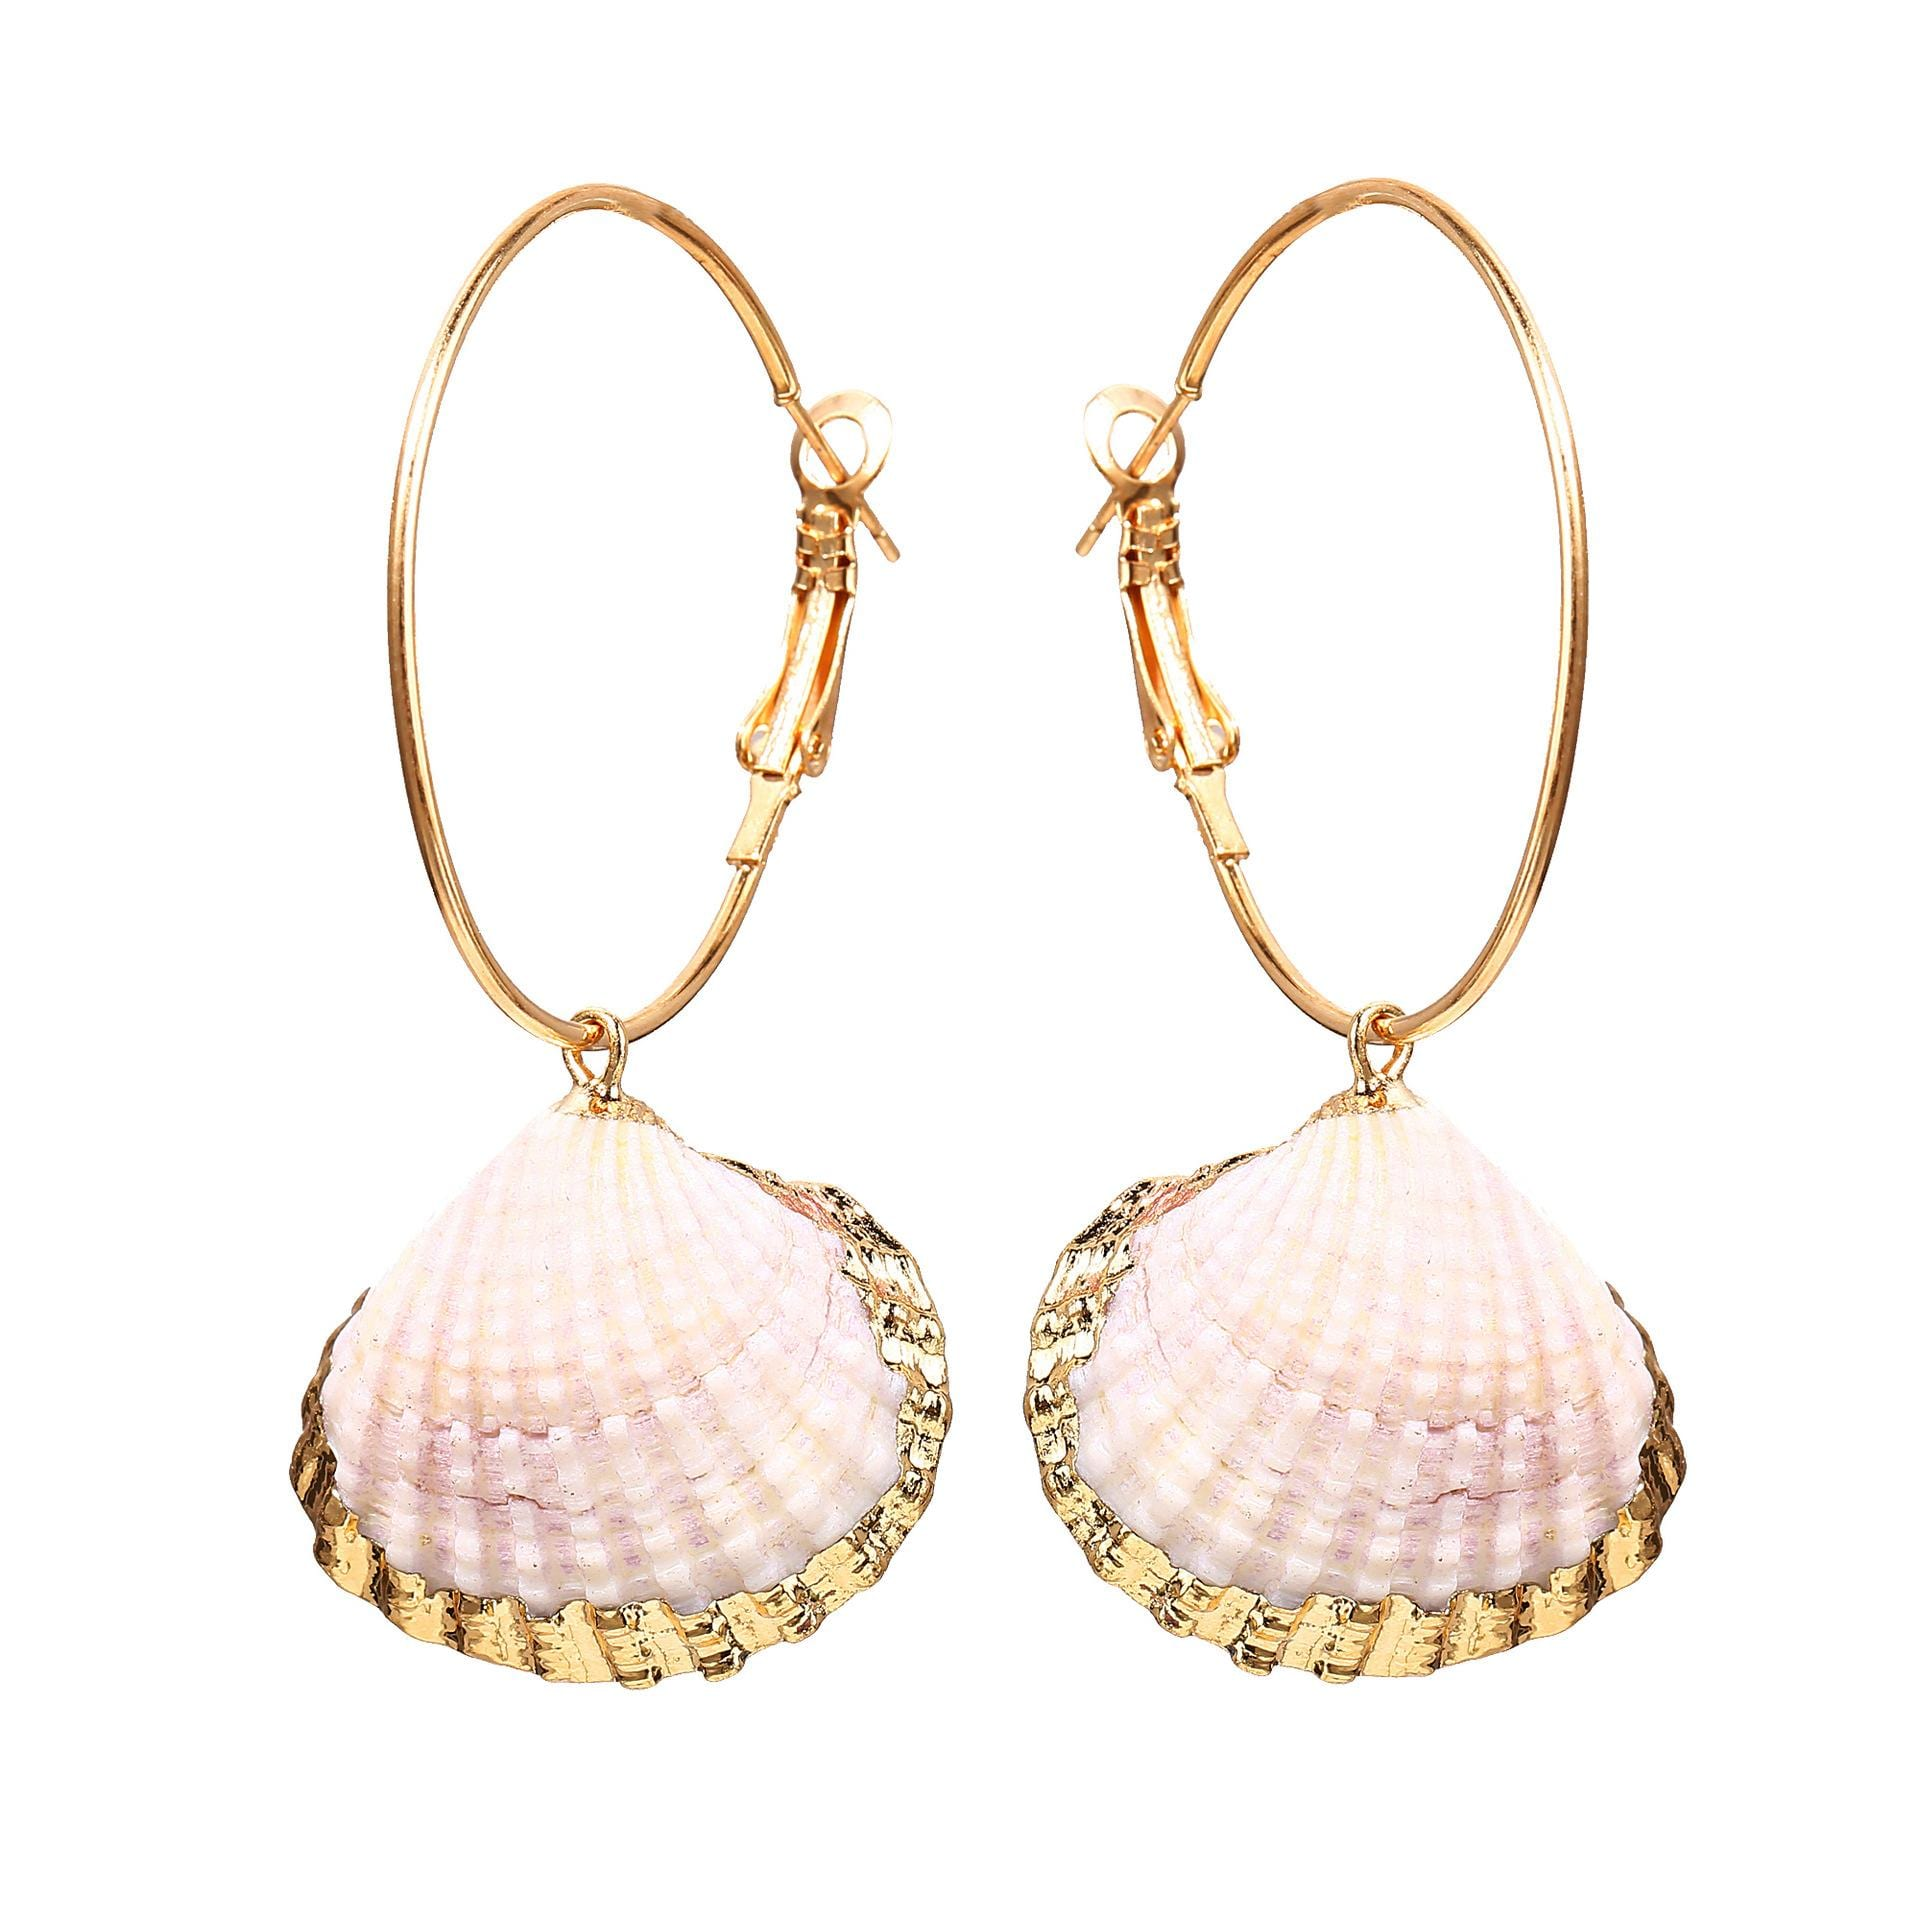 Creative Retro Circle Inlaid Gold Scallop Earrings